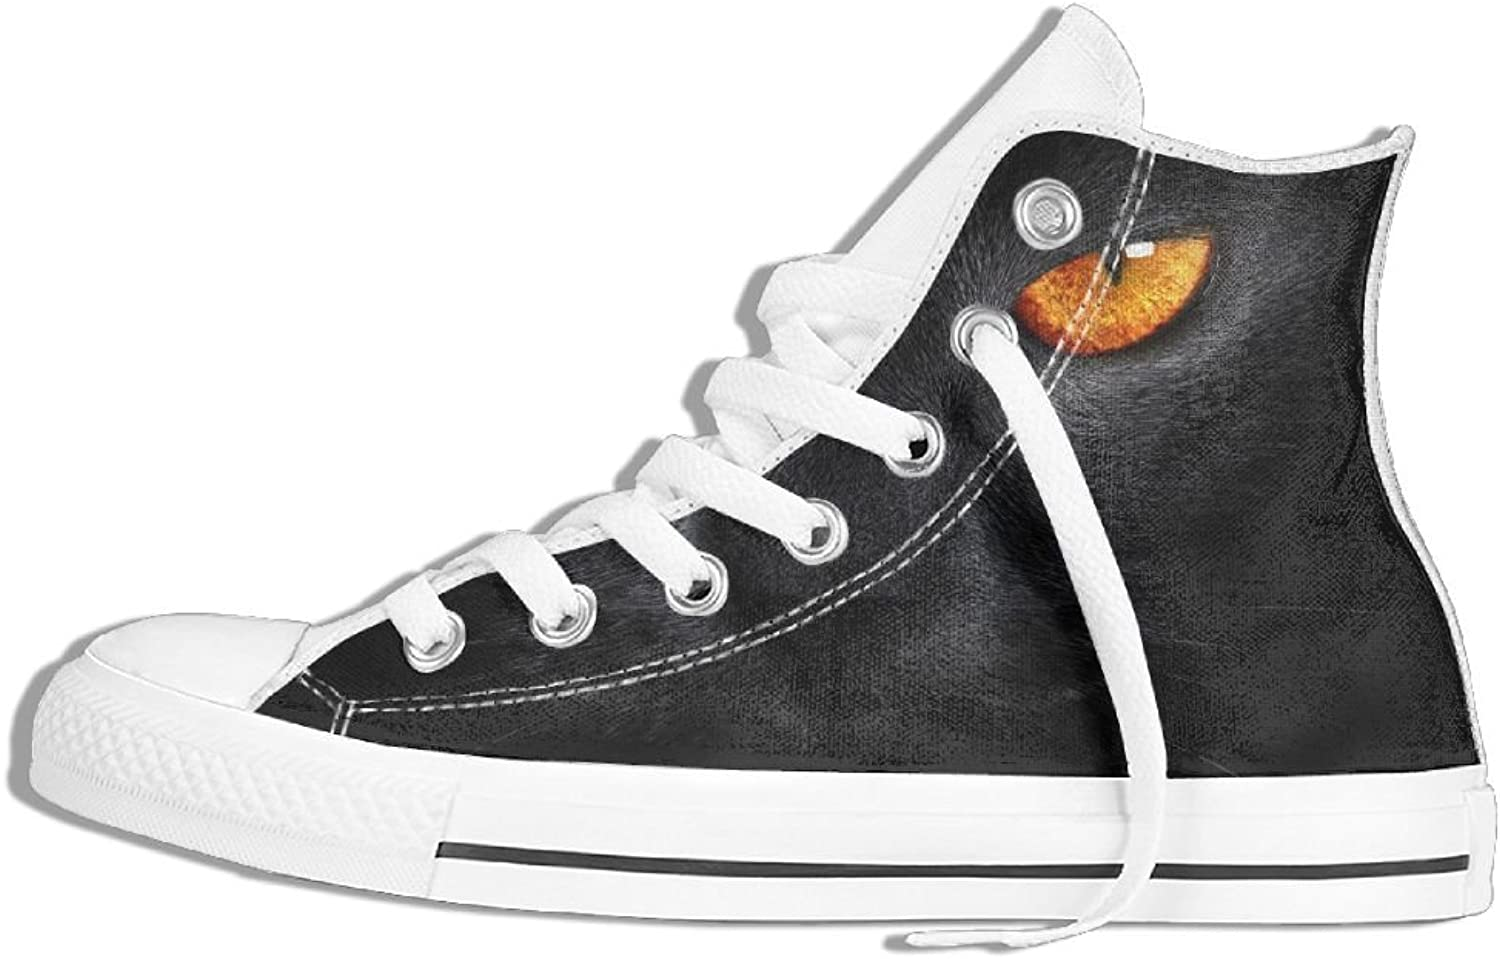 Unisex Hi-Top Canvas Sneakers Black Cat Eyes Lace Up Anti-slip Sports Trainers shoes